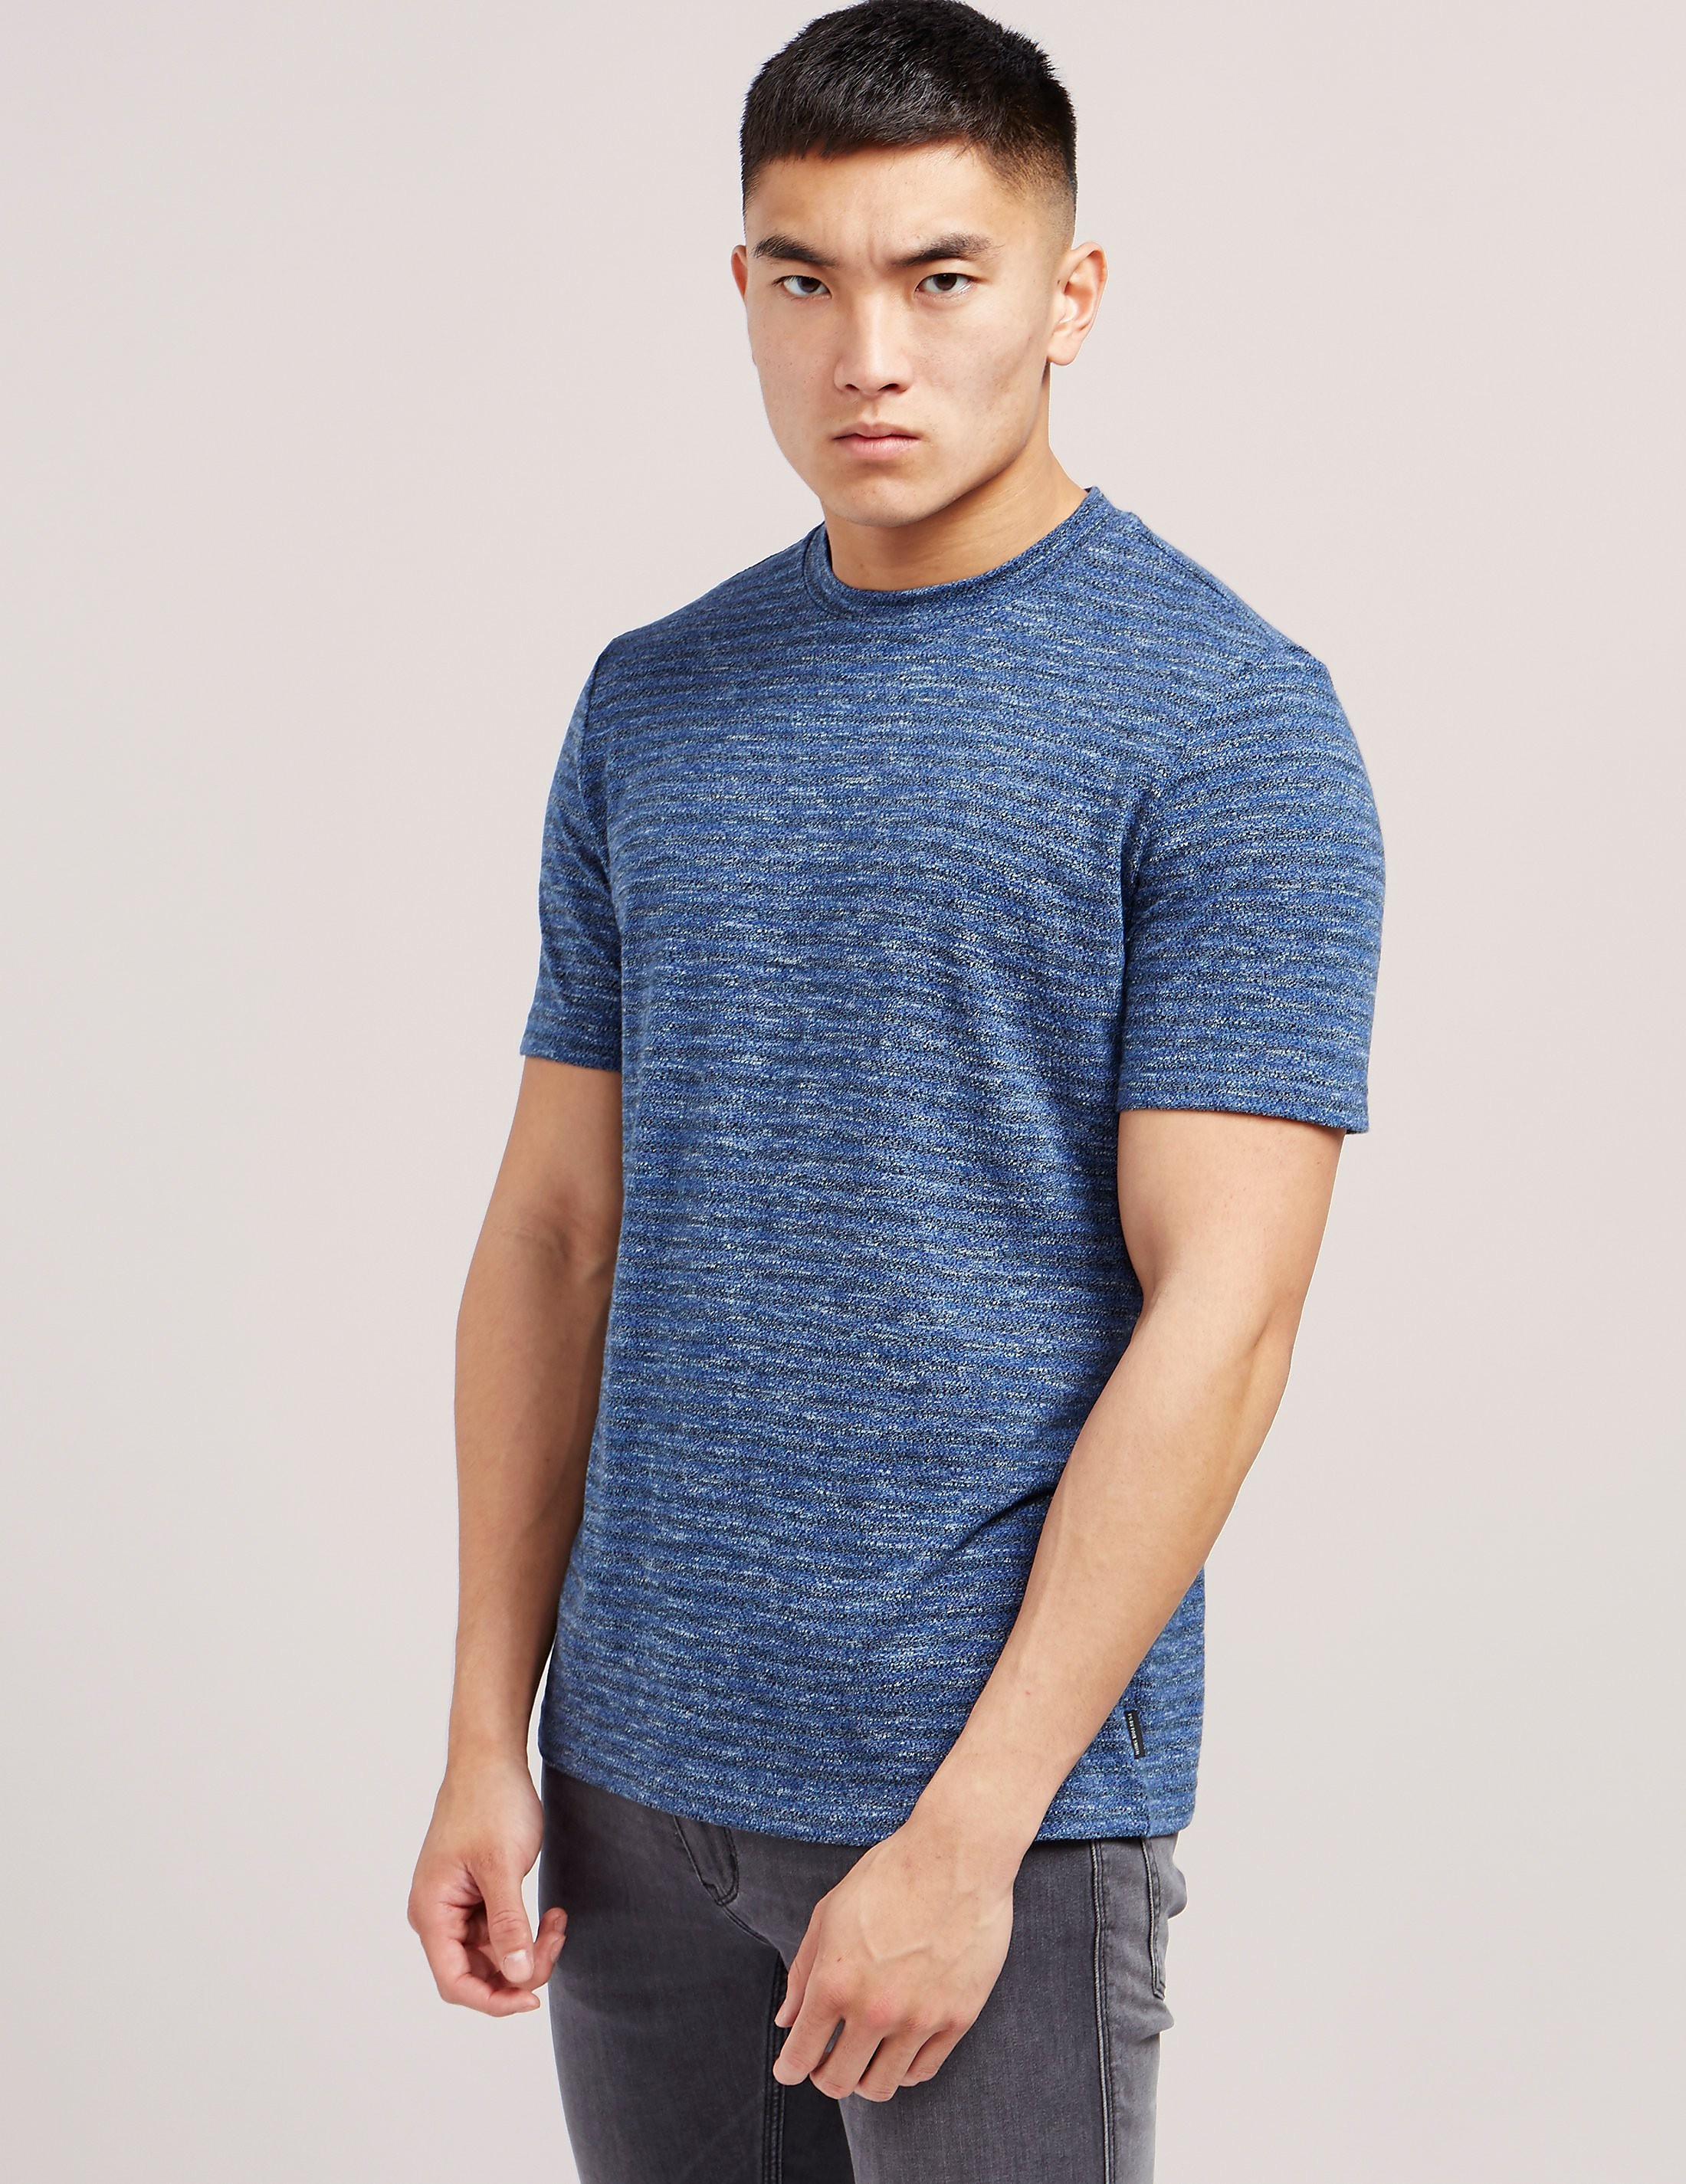 Paul Smith Textured Stripe Short Sleeve T-Shirt